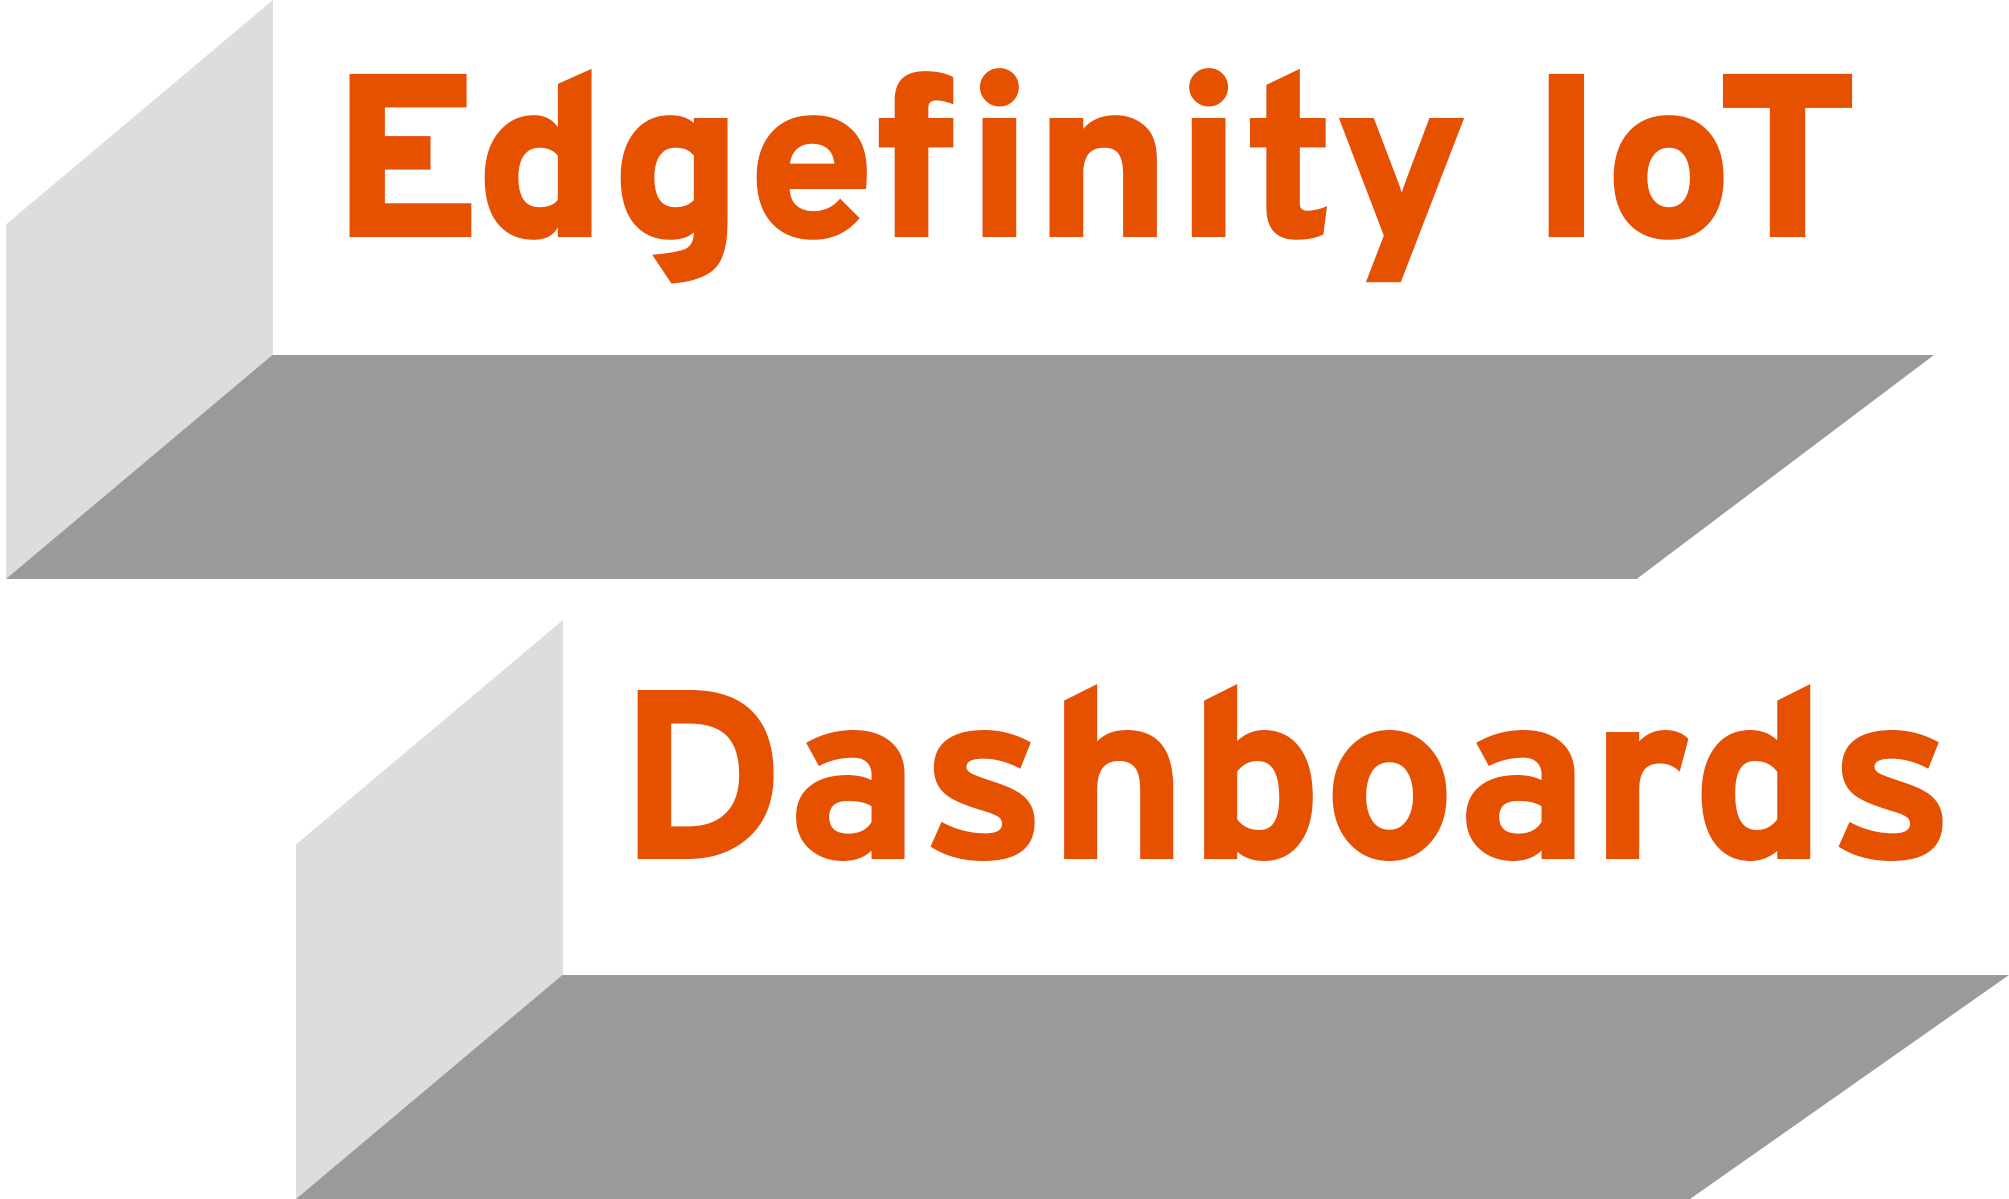 Get a handle on your retail inventory RFID data with Edgefinity IoT RFID software dashboards.